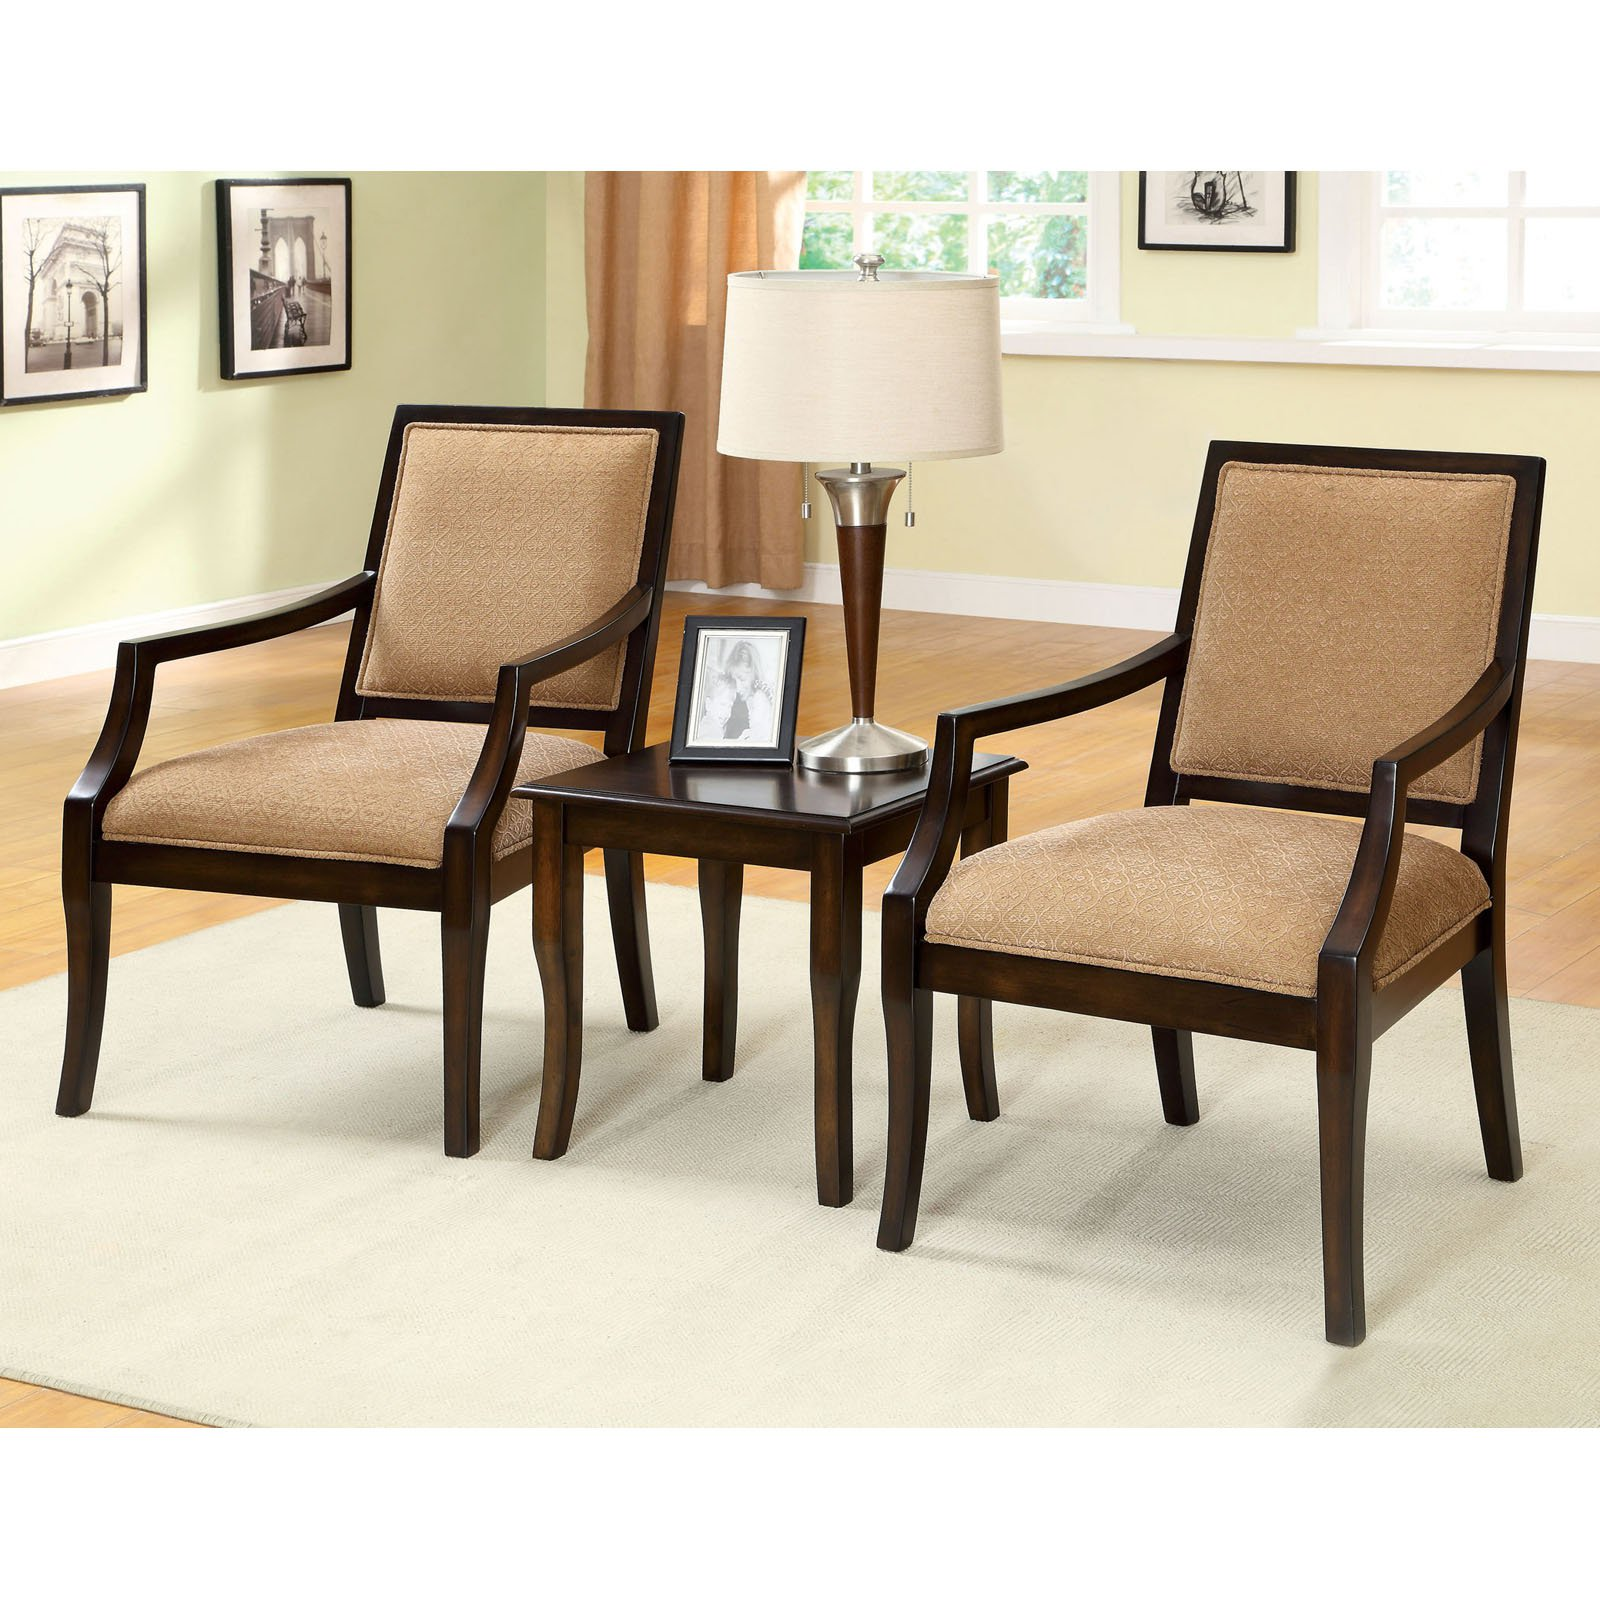 Furniture Of America Elizabeth 3 Piece Upholstered Arm Chairs And Table Set